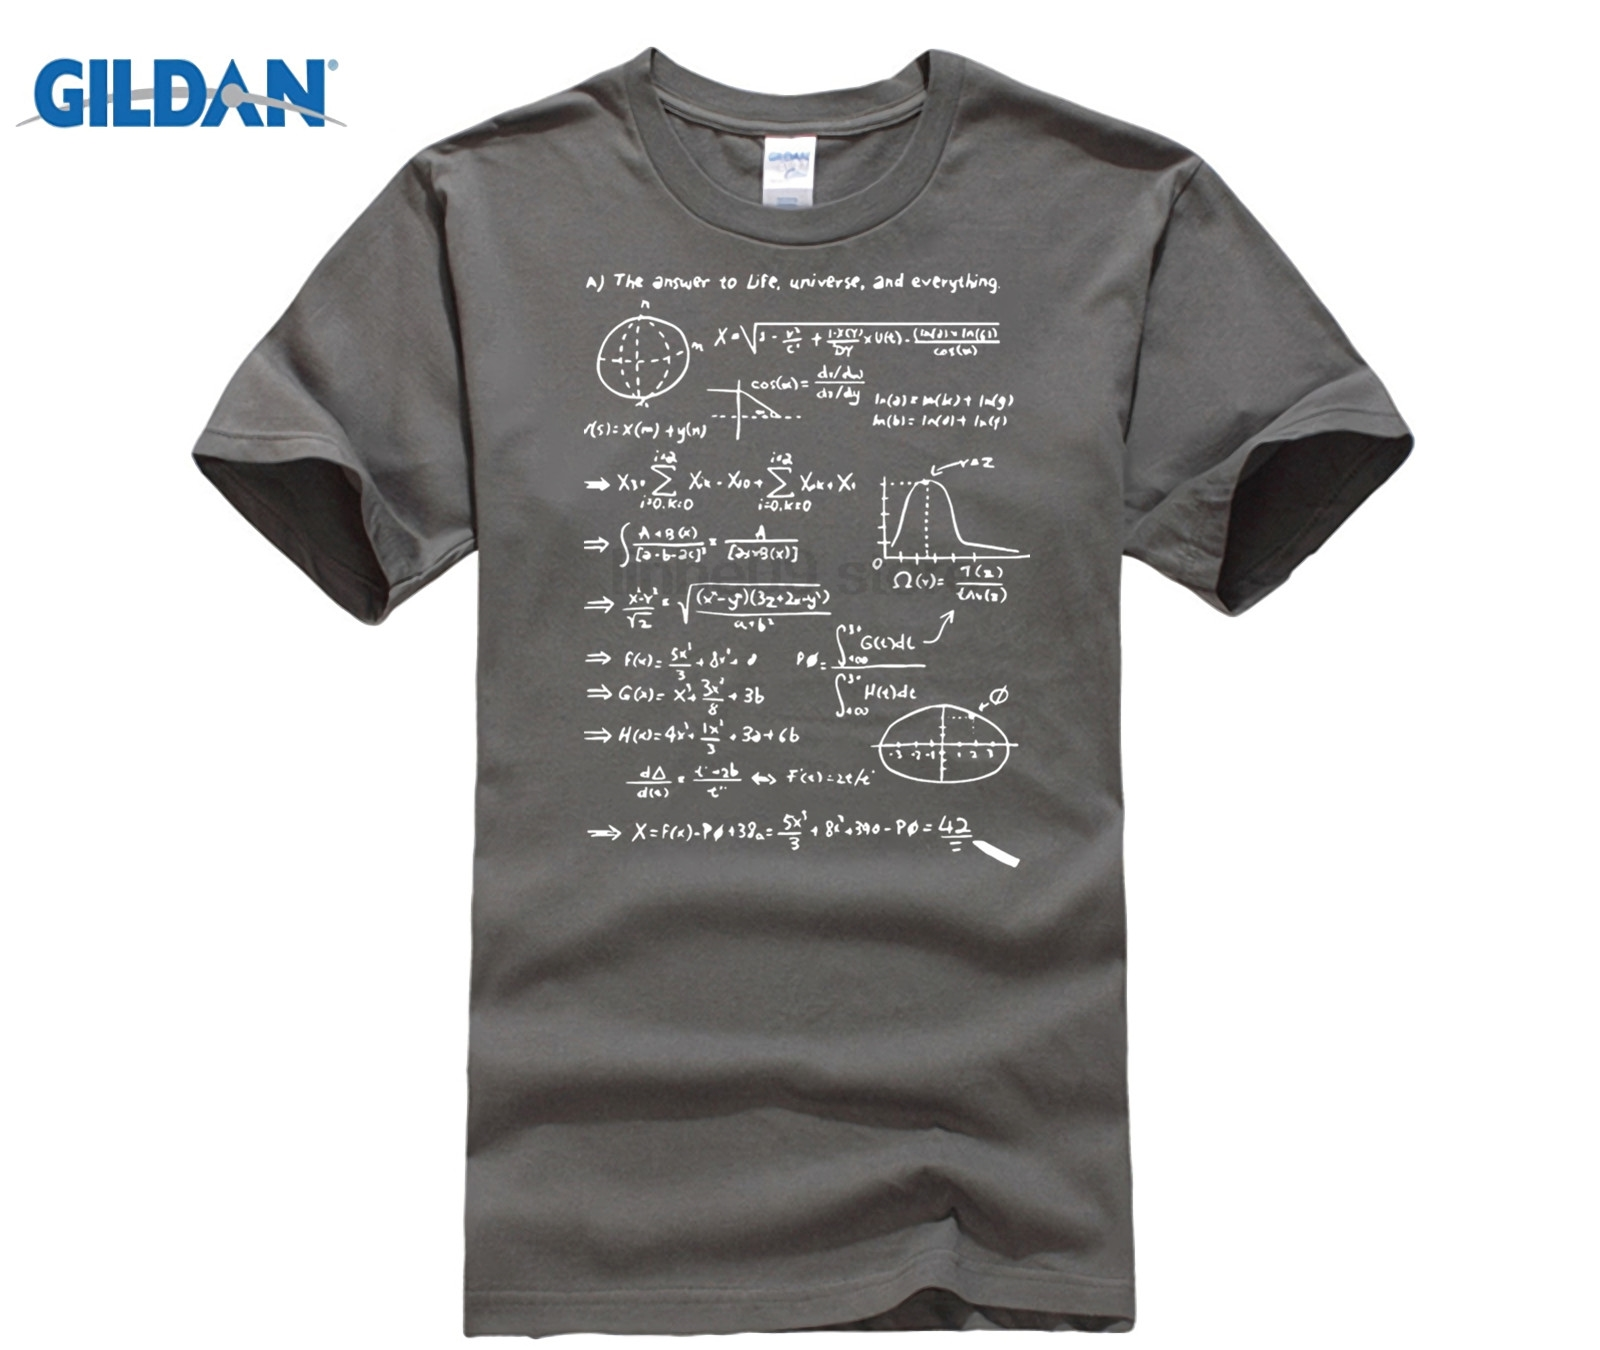 US $9 71 19% OFF|GILDAN Men T shirt The Hitchhiker's Guide To The Galaxy 42  The Answer To Life Universe & Everything O Neck Cotton T shirts-in